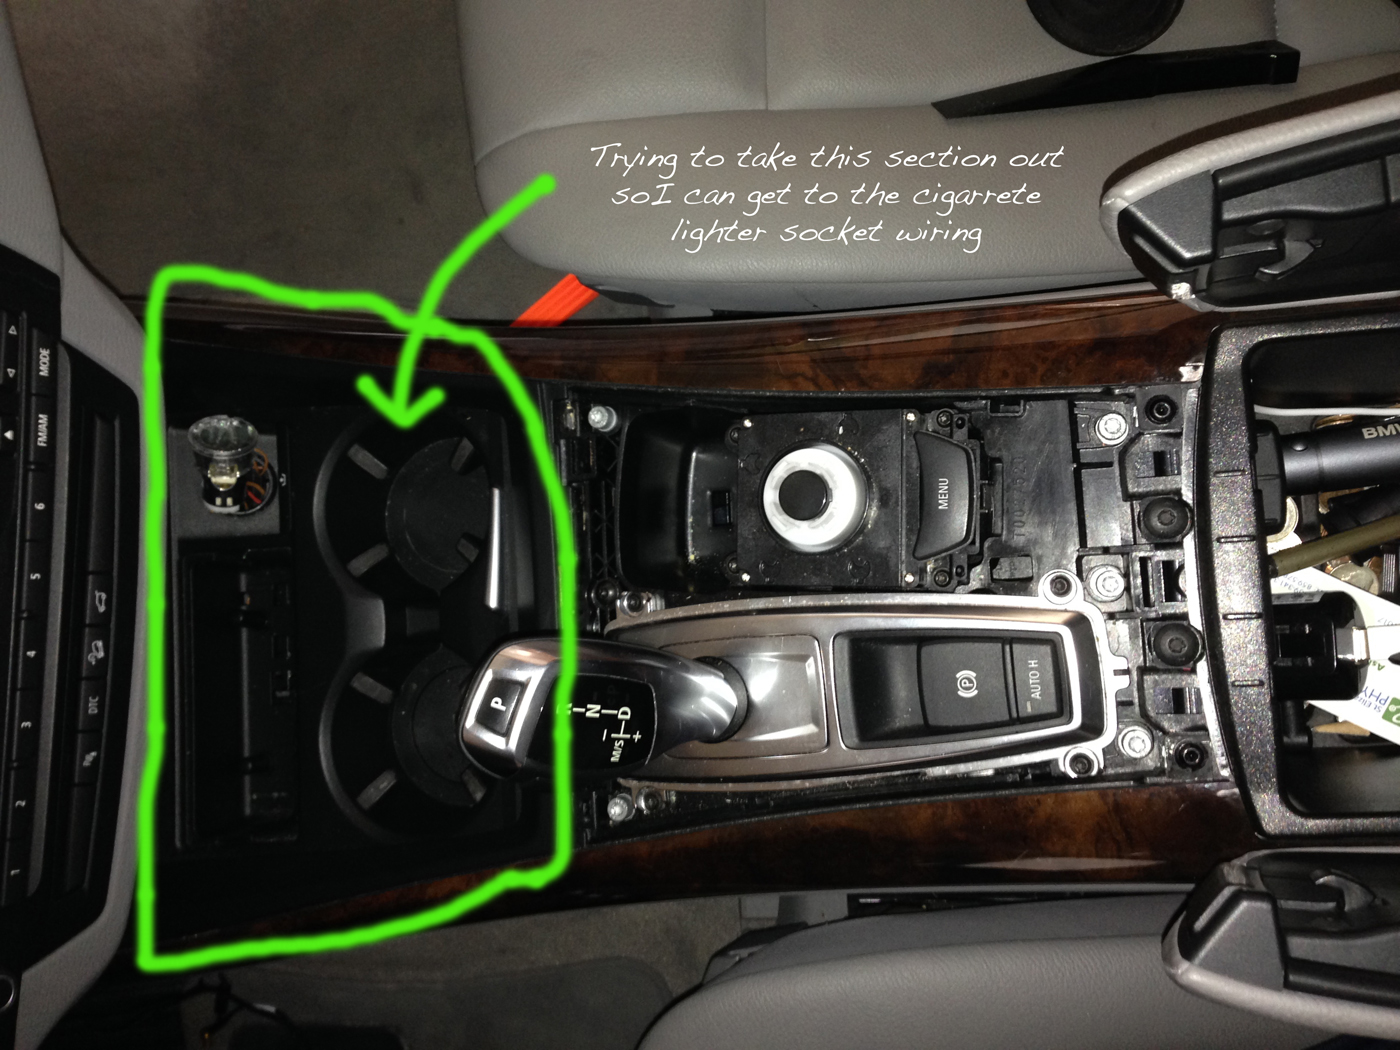 2013 X3 Fuse Box All Kind Of Wiring Diagrams Bmw X5 2003 Cigarette Lighter Location Diagram Gas